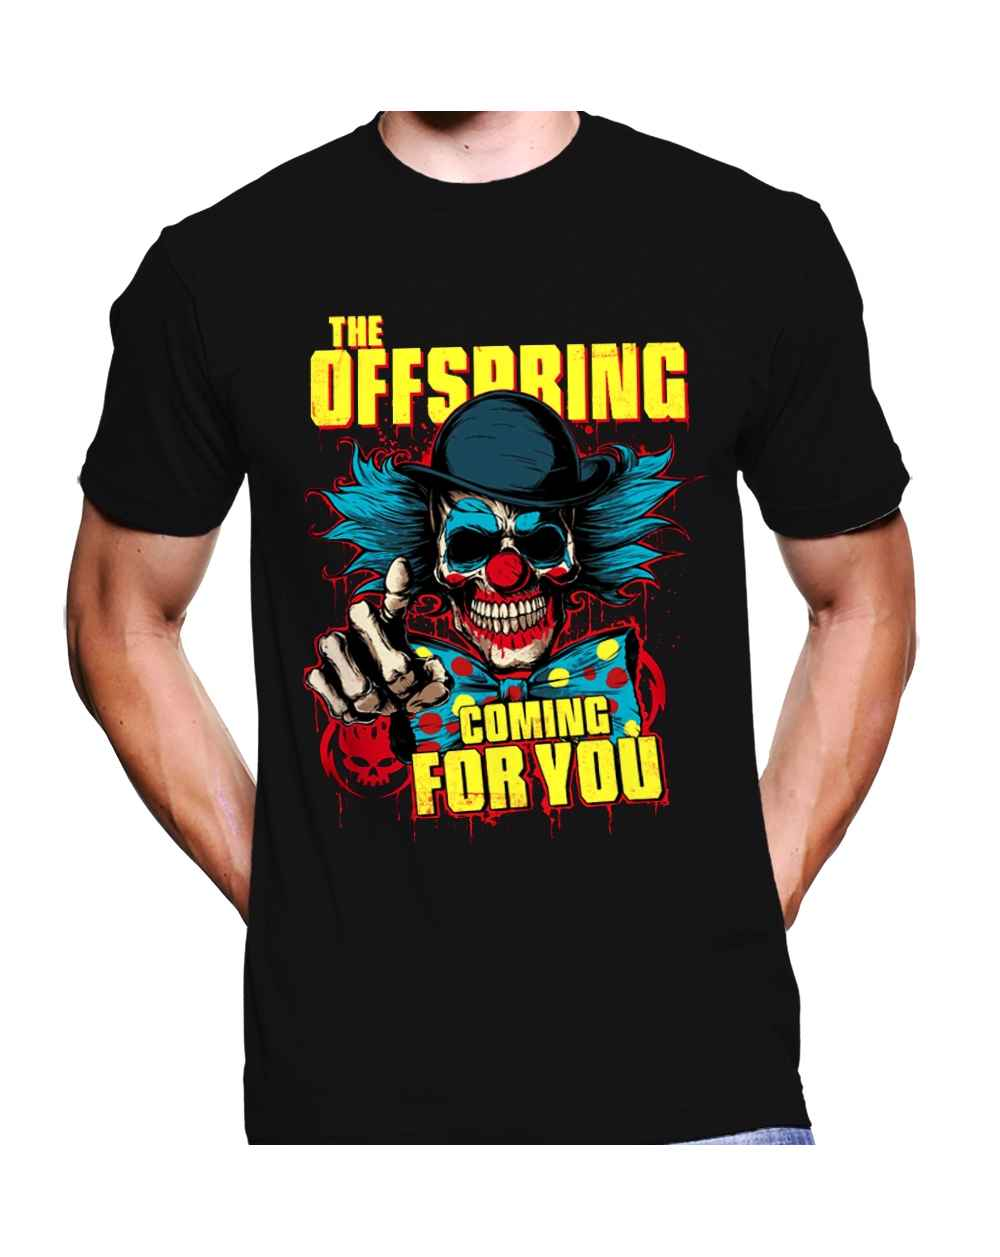 Camiseta Estampada Hombre The Offspring